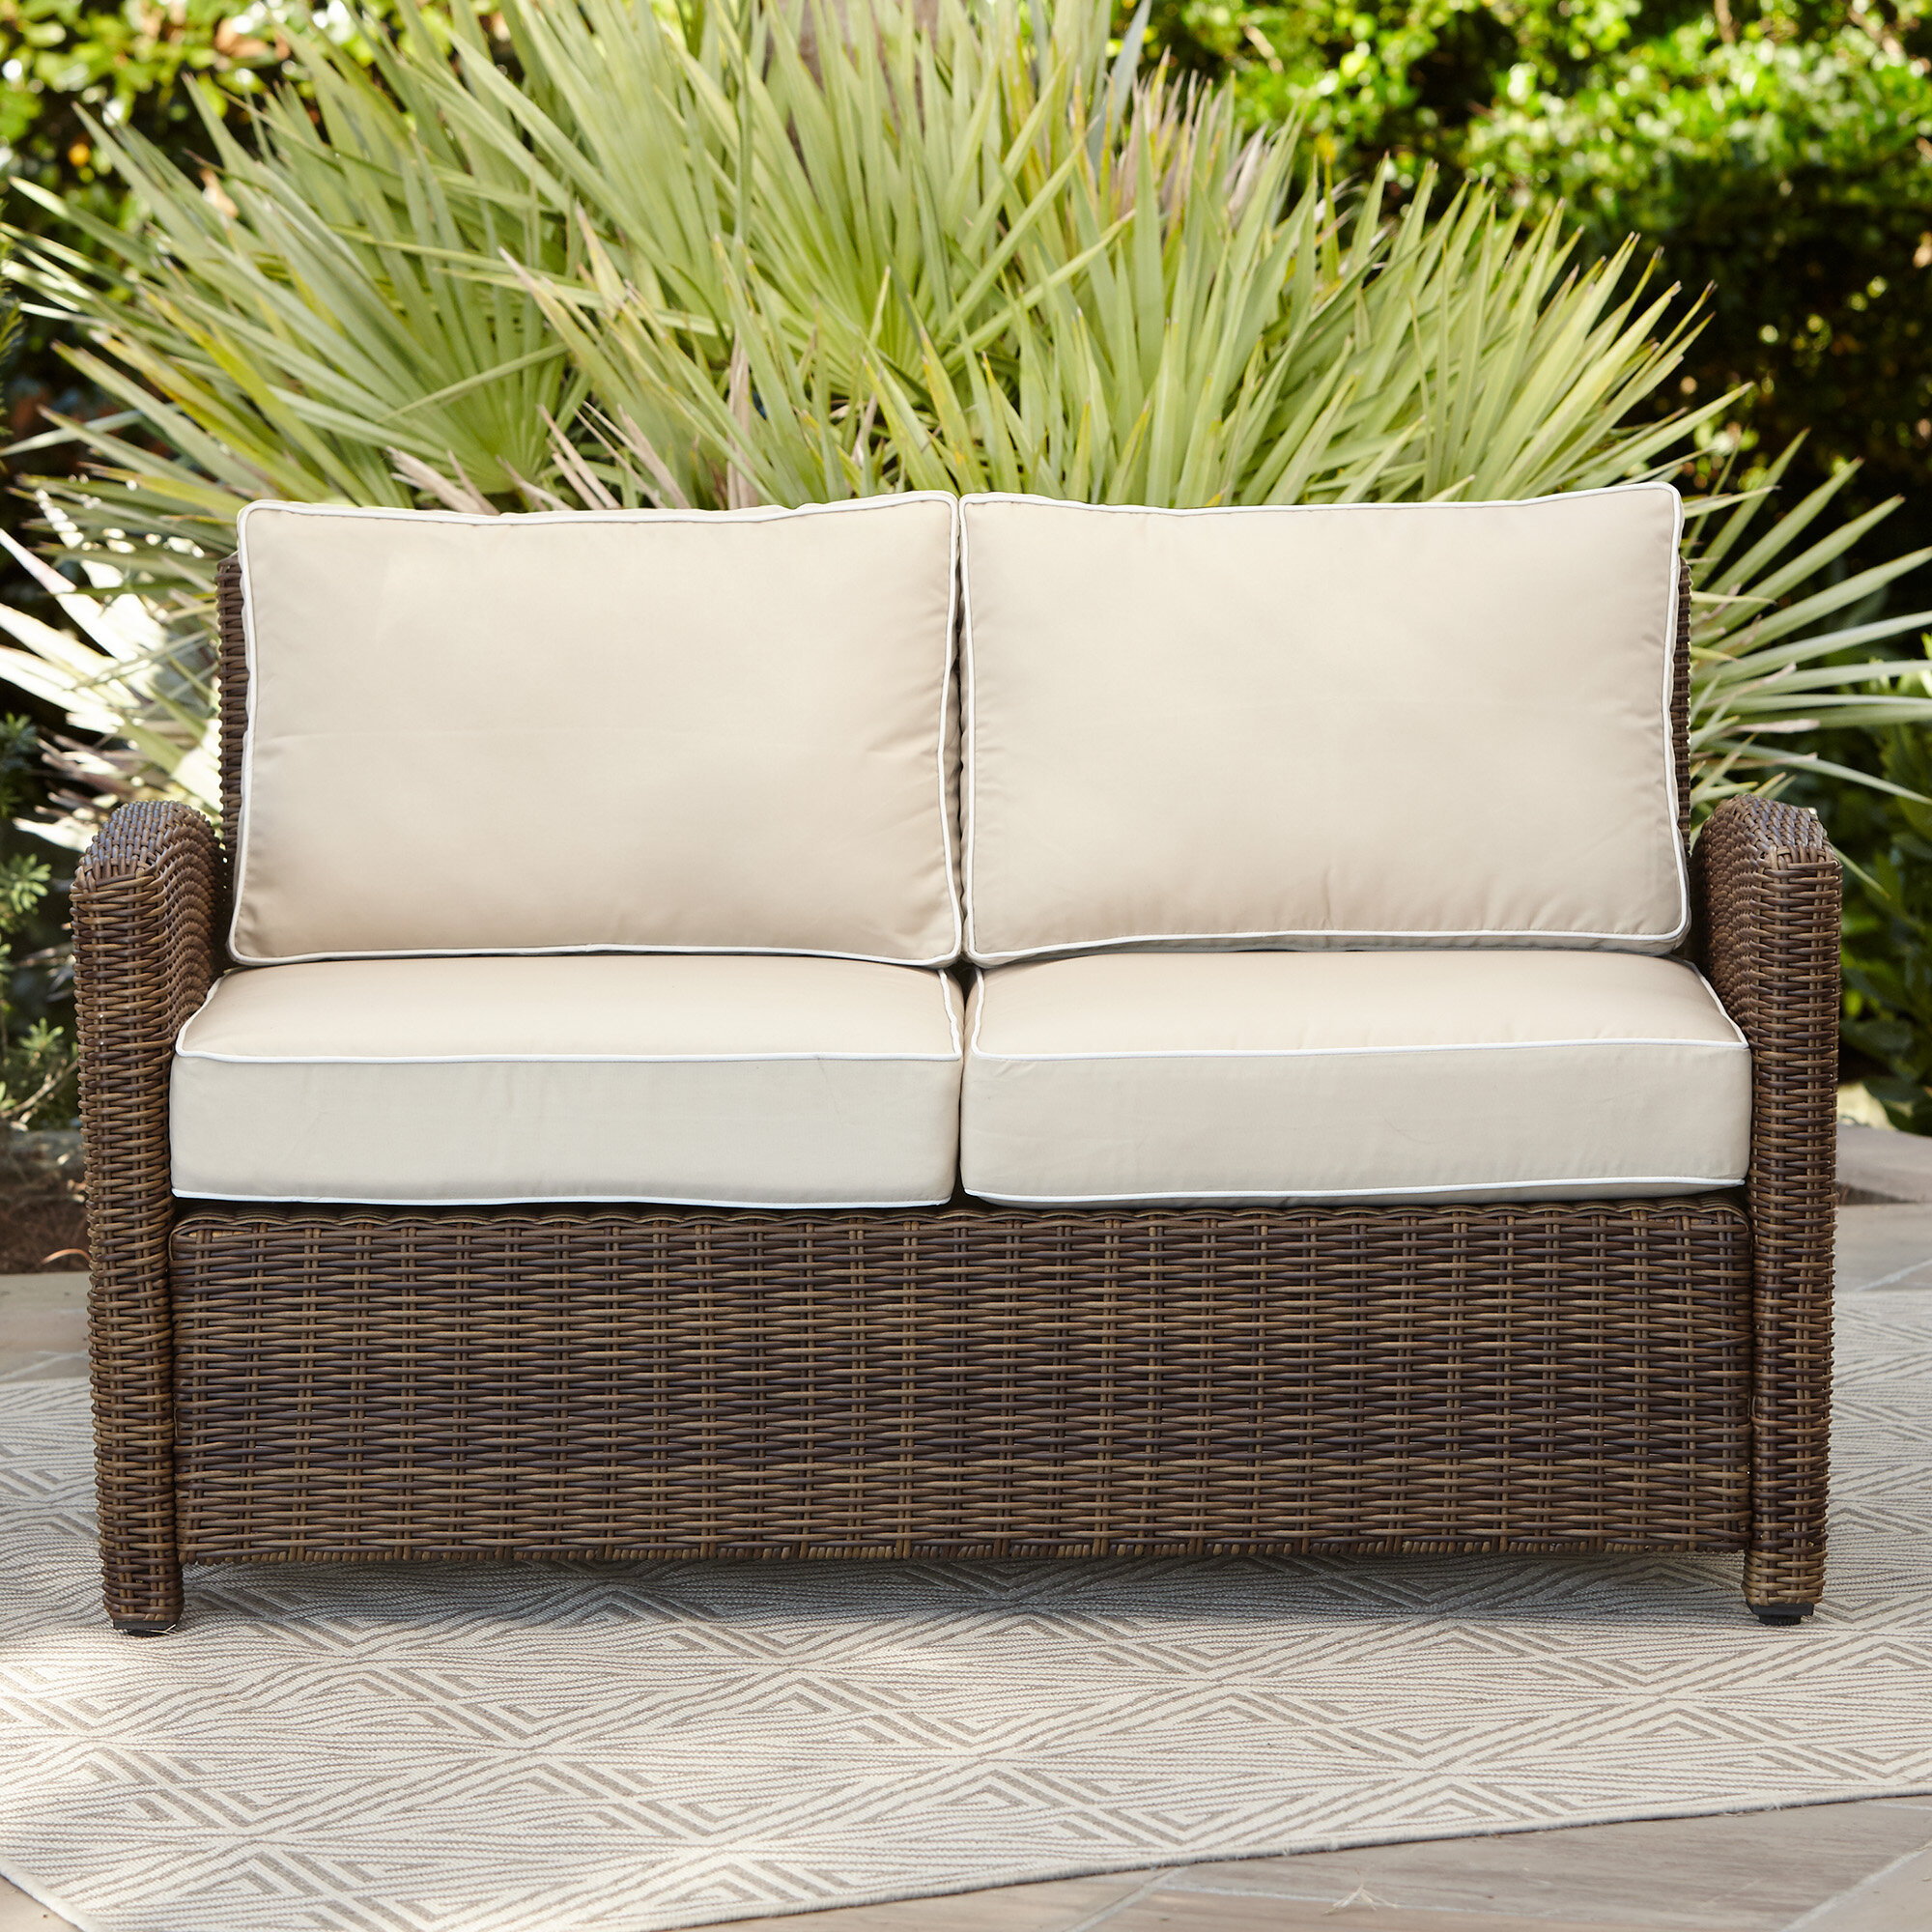 product outdoor over home on pillow garden free orders overstock loveseat shipping wicker tufted cushion perfect fresco